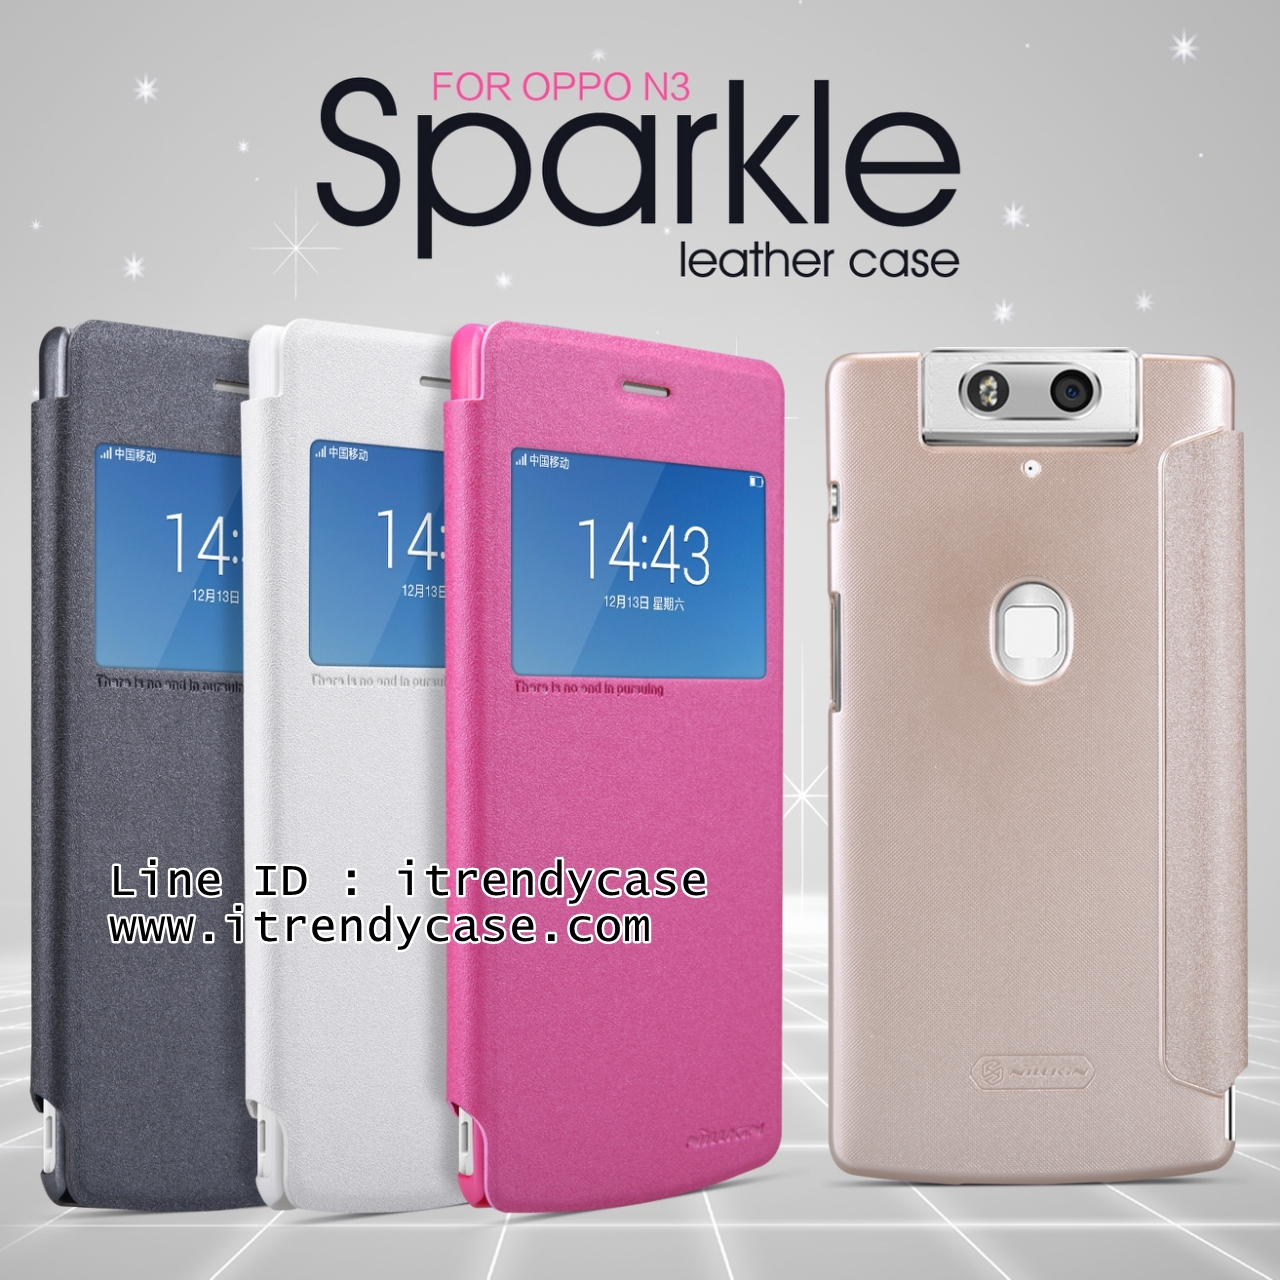 OPPO N3 - เคสฝาพับ Nillkin Sparkle leather case แท้